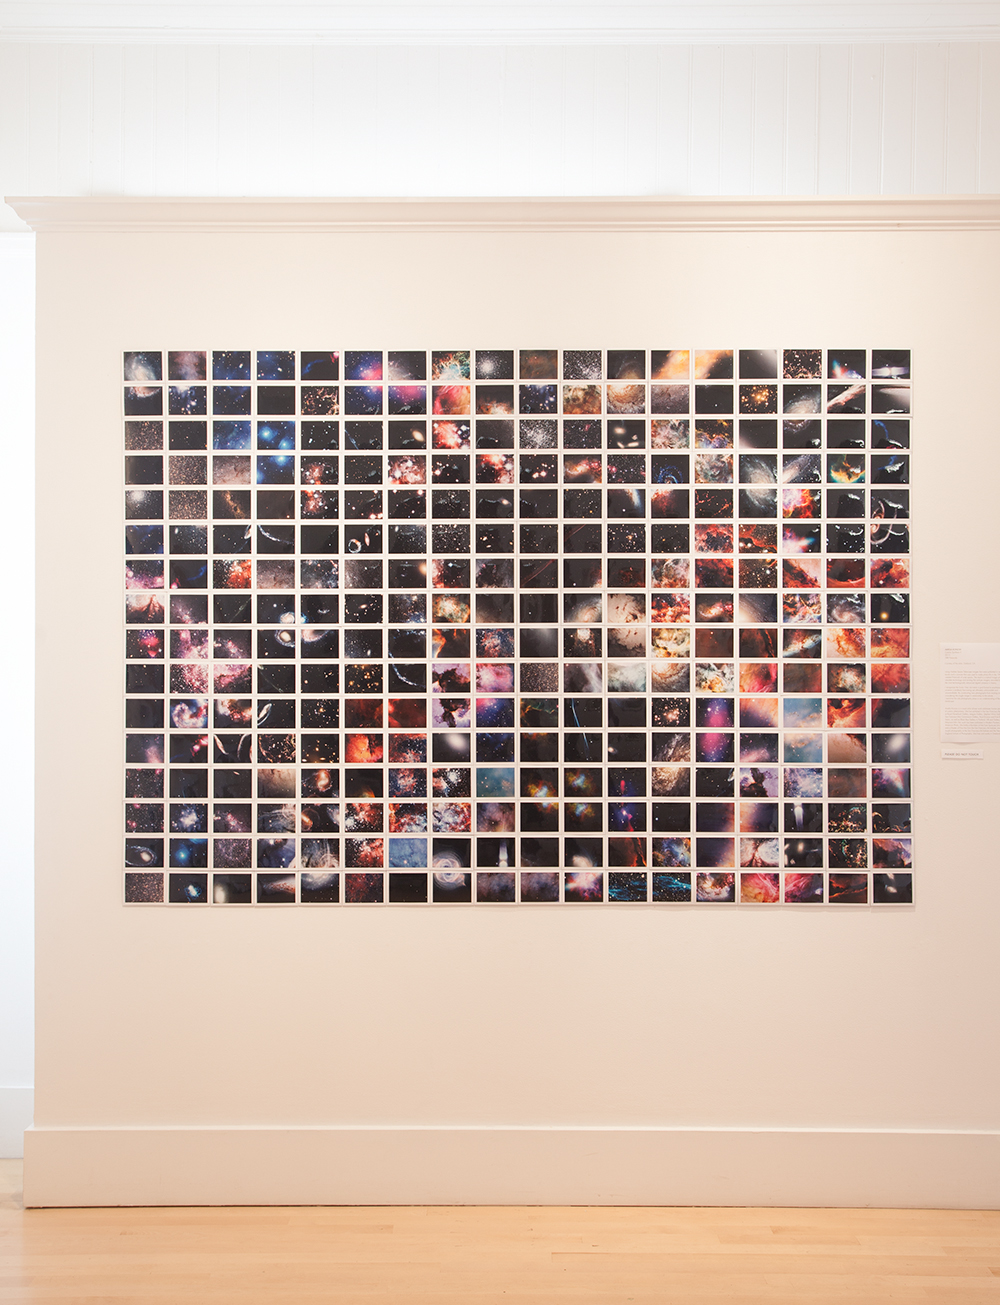 Cosmic Synthesis II  installed in Cosmic Wonders: The Moon, The Stars, and the Space Between at Bolinas Museum, Bolinas, California. The piece is a montage of 288 Polaroids of outer space, 54 x 76.5 inches, 2013.